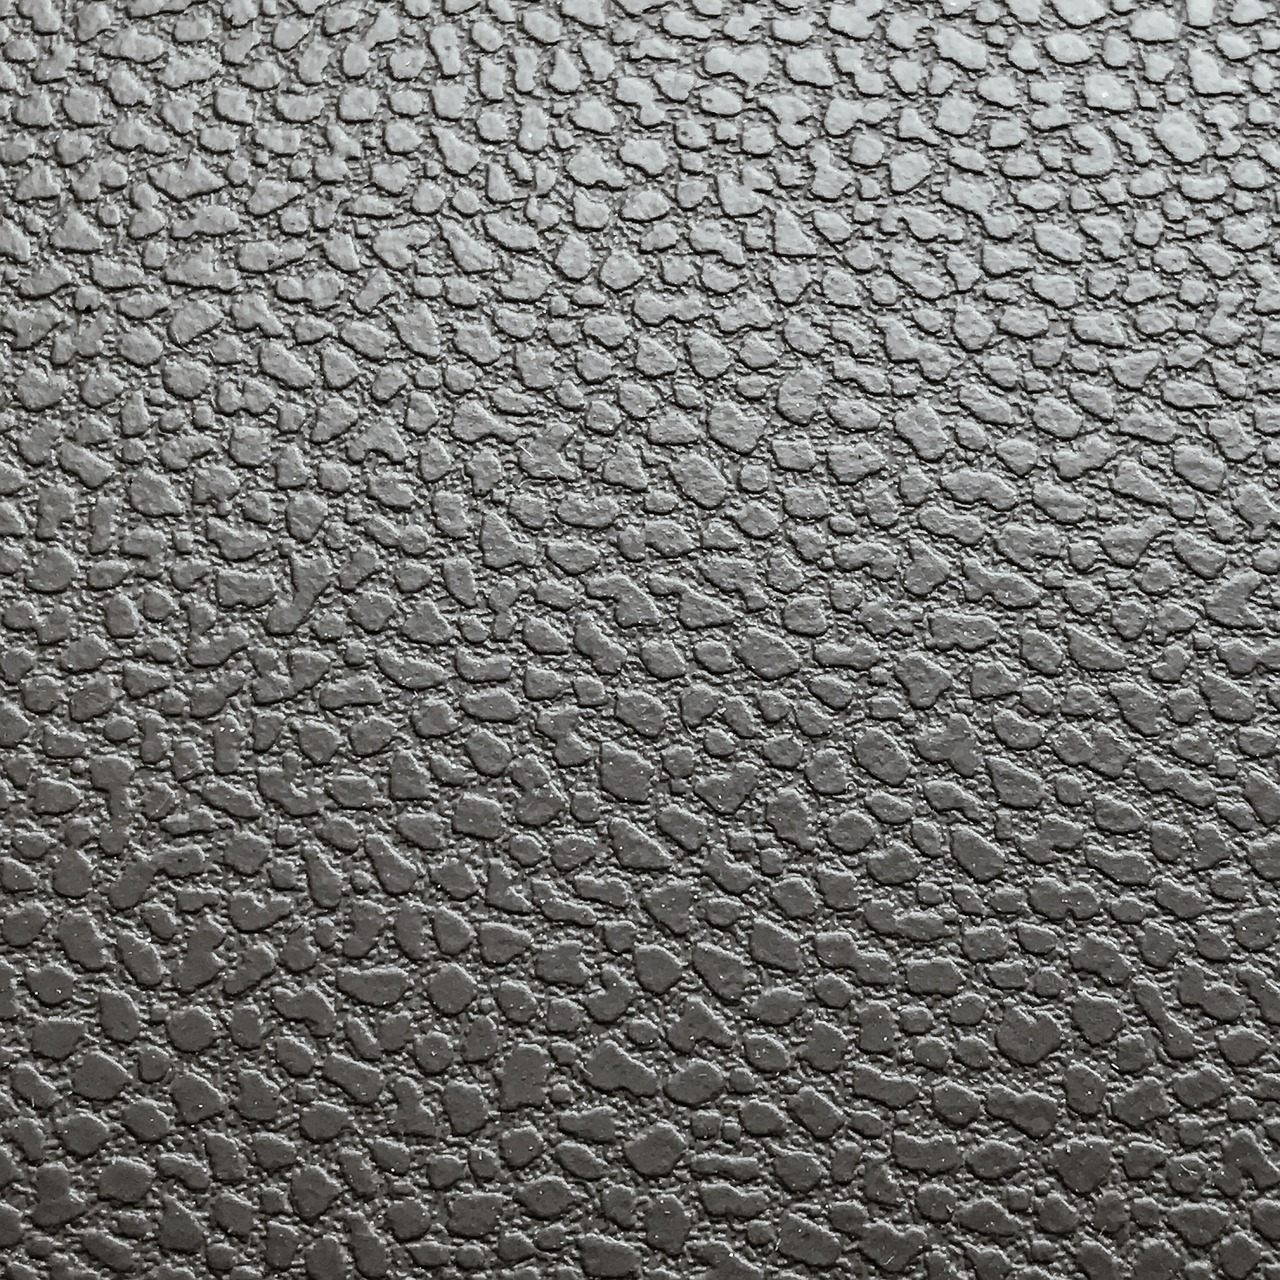 texture surface gray free photo